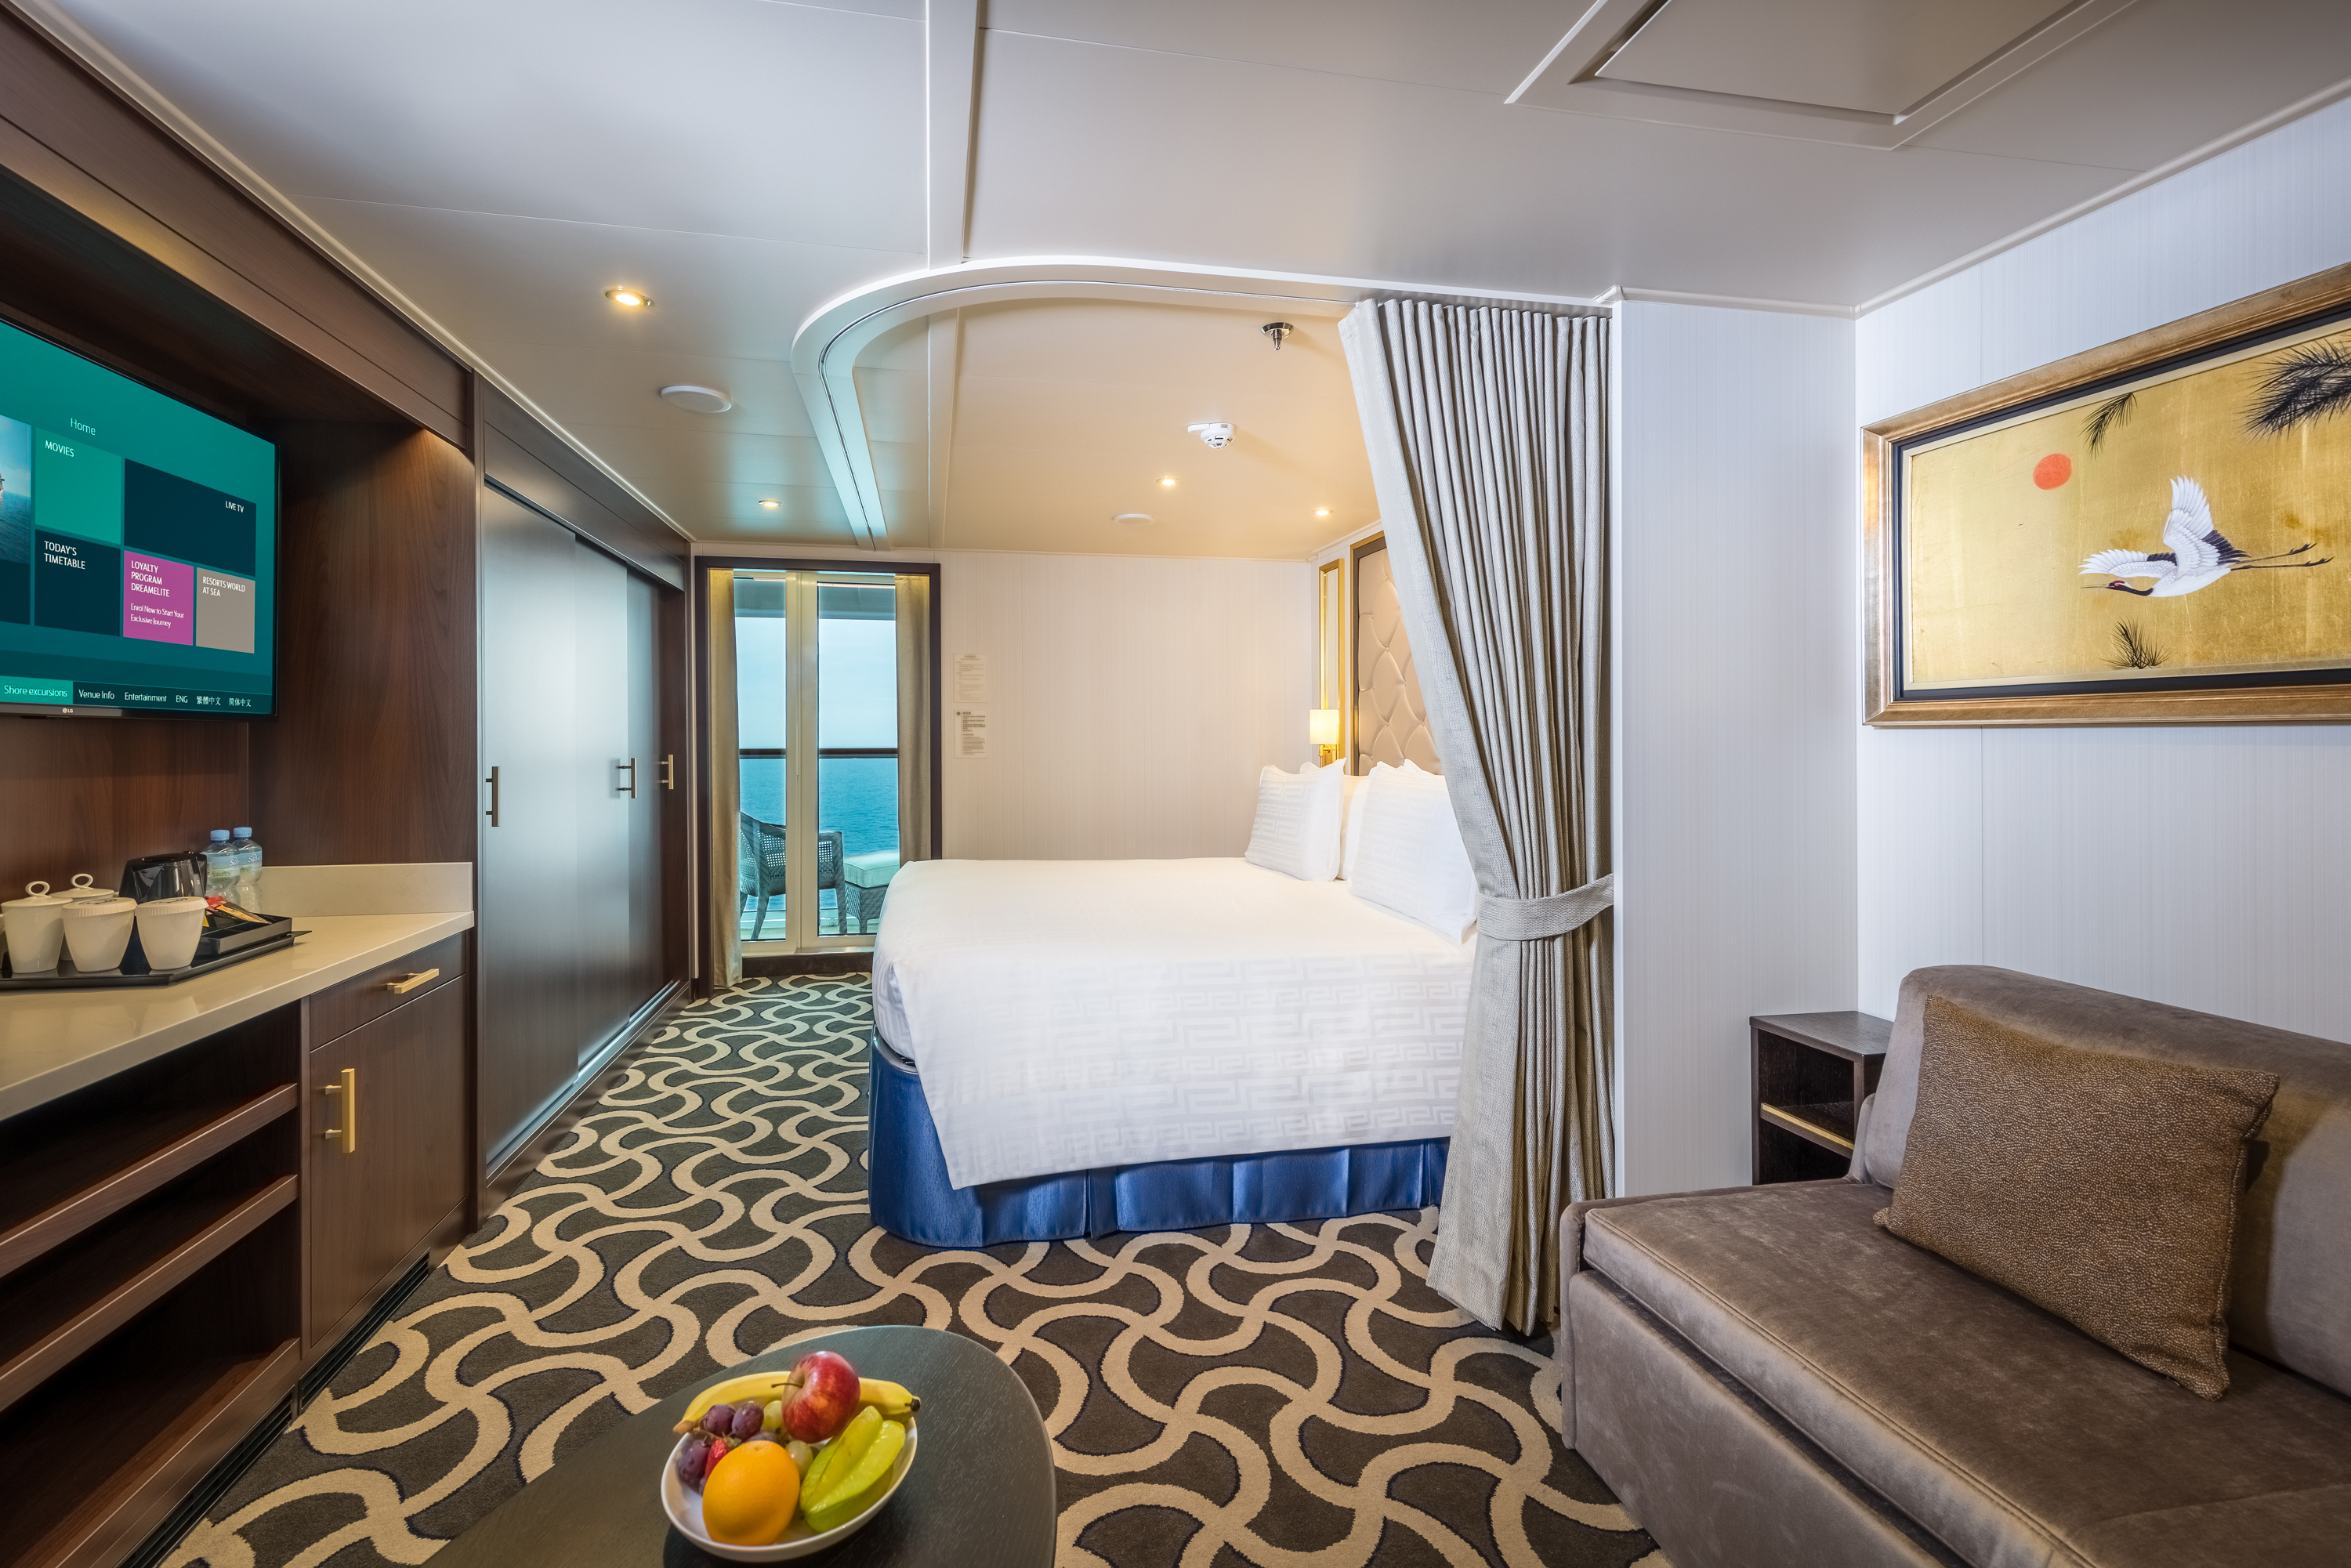 WDR_BDS_Balcony Deluxe Stateroom_DK15_01.jpg-h